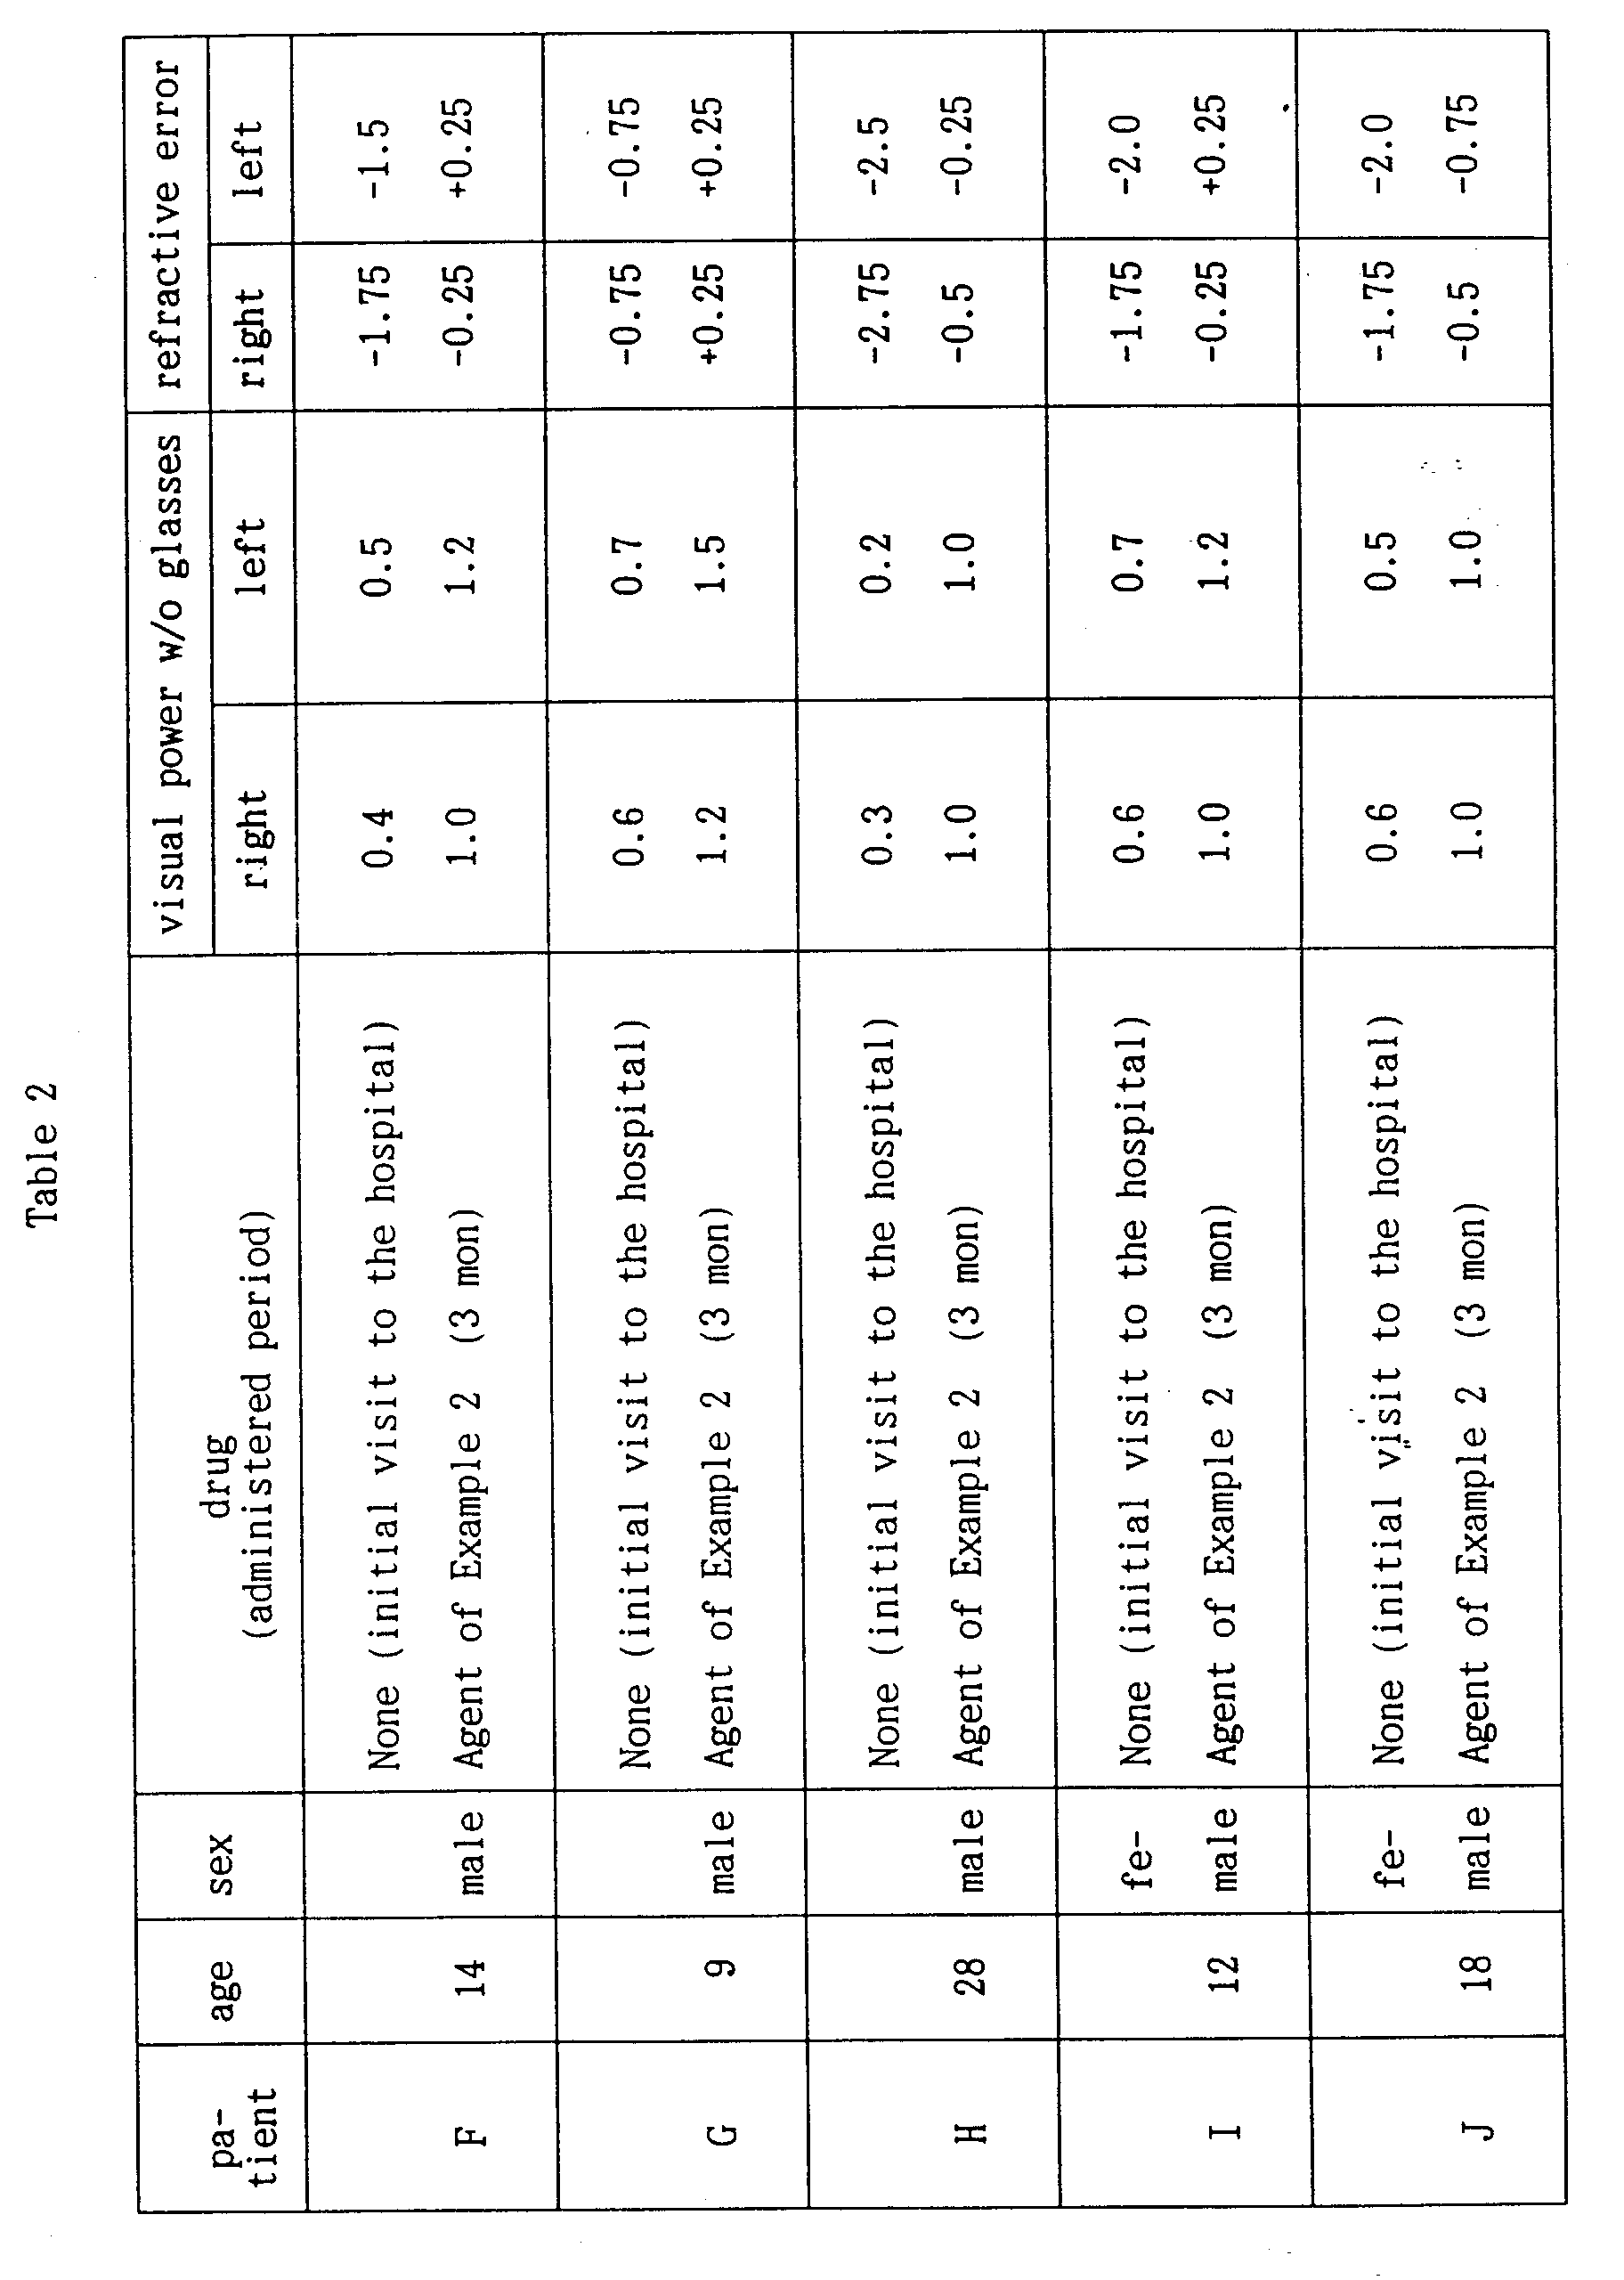 EP0647445B1 - Composition for prophylaxis and treatment of